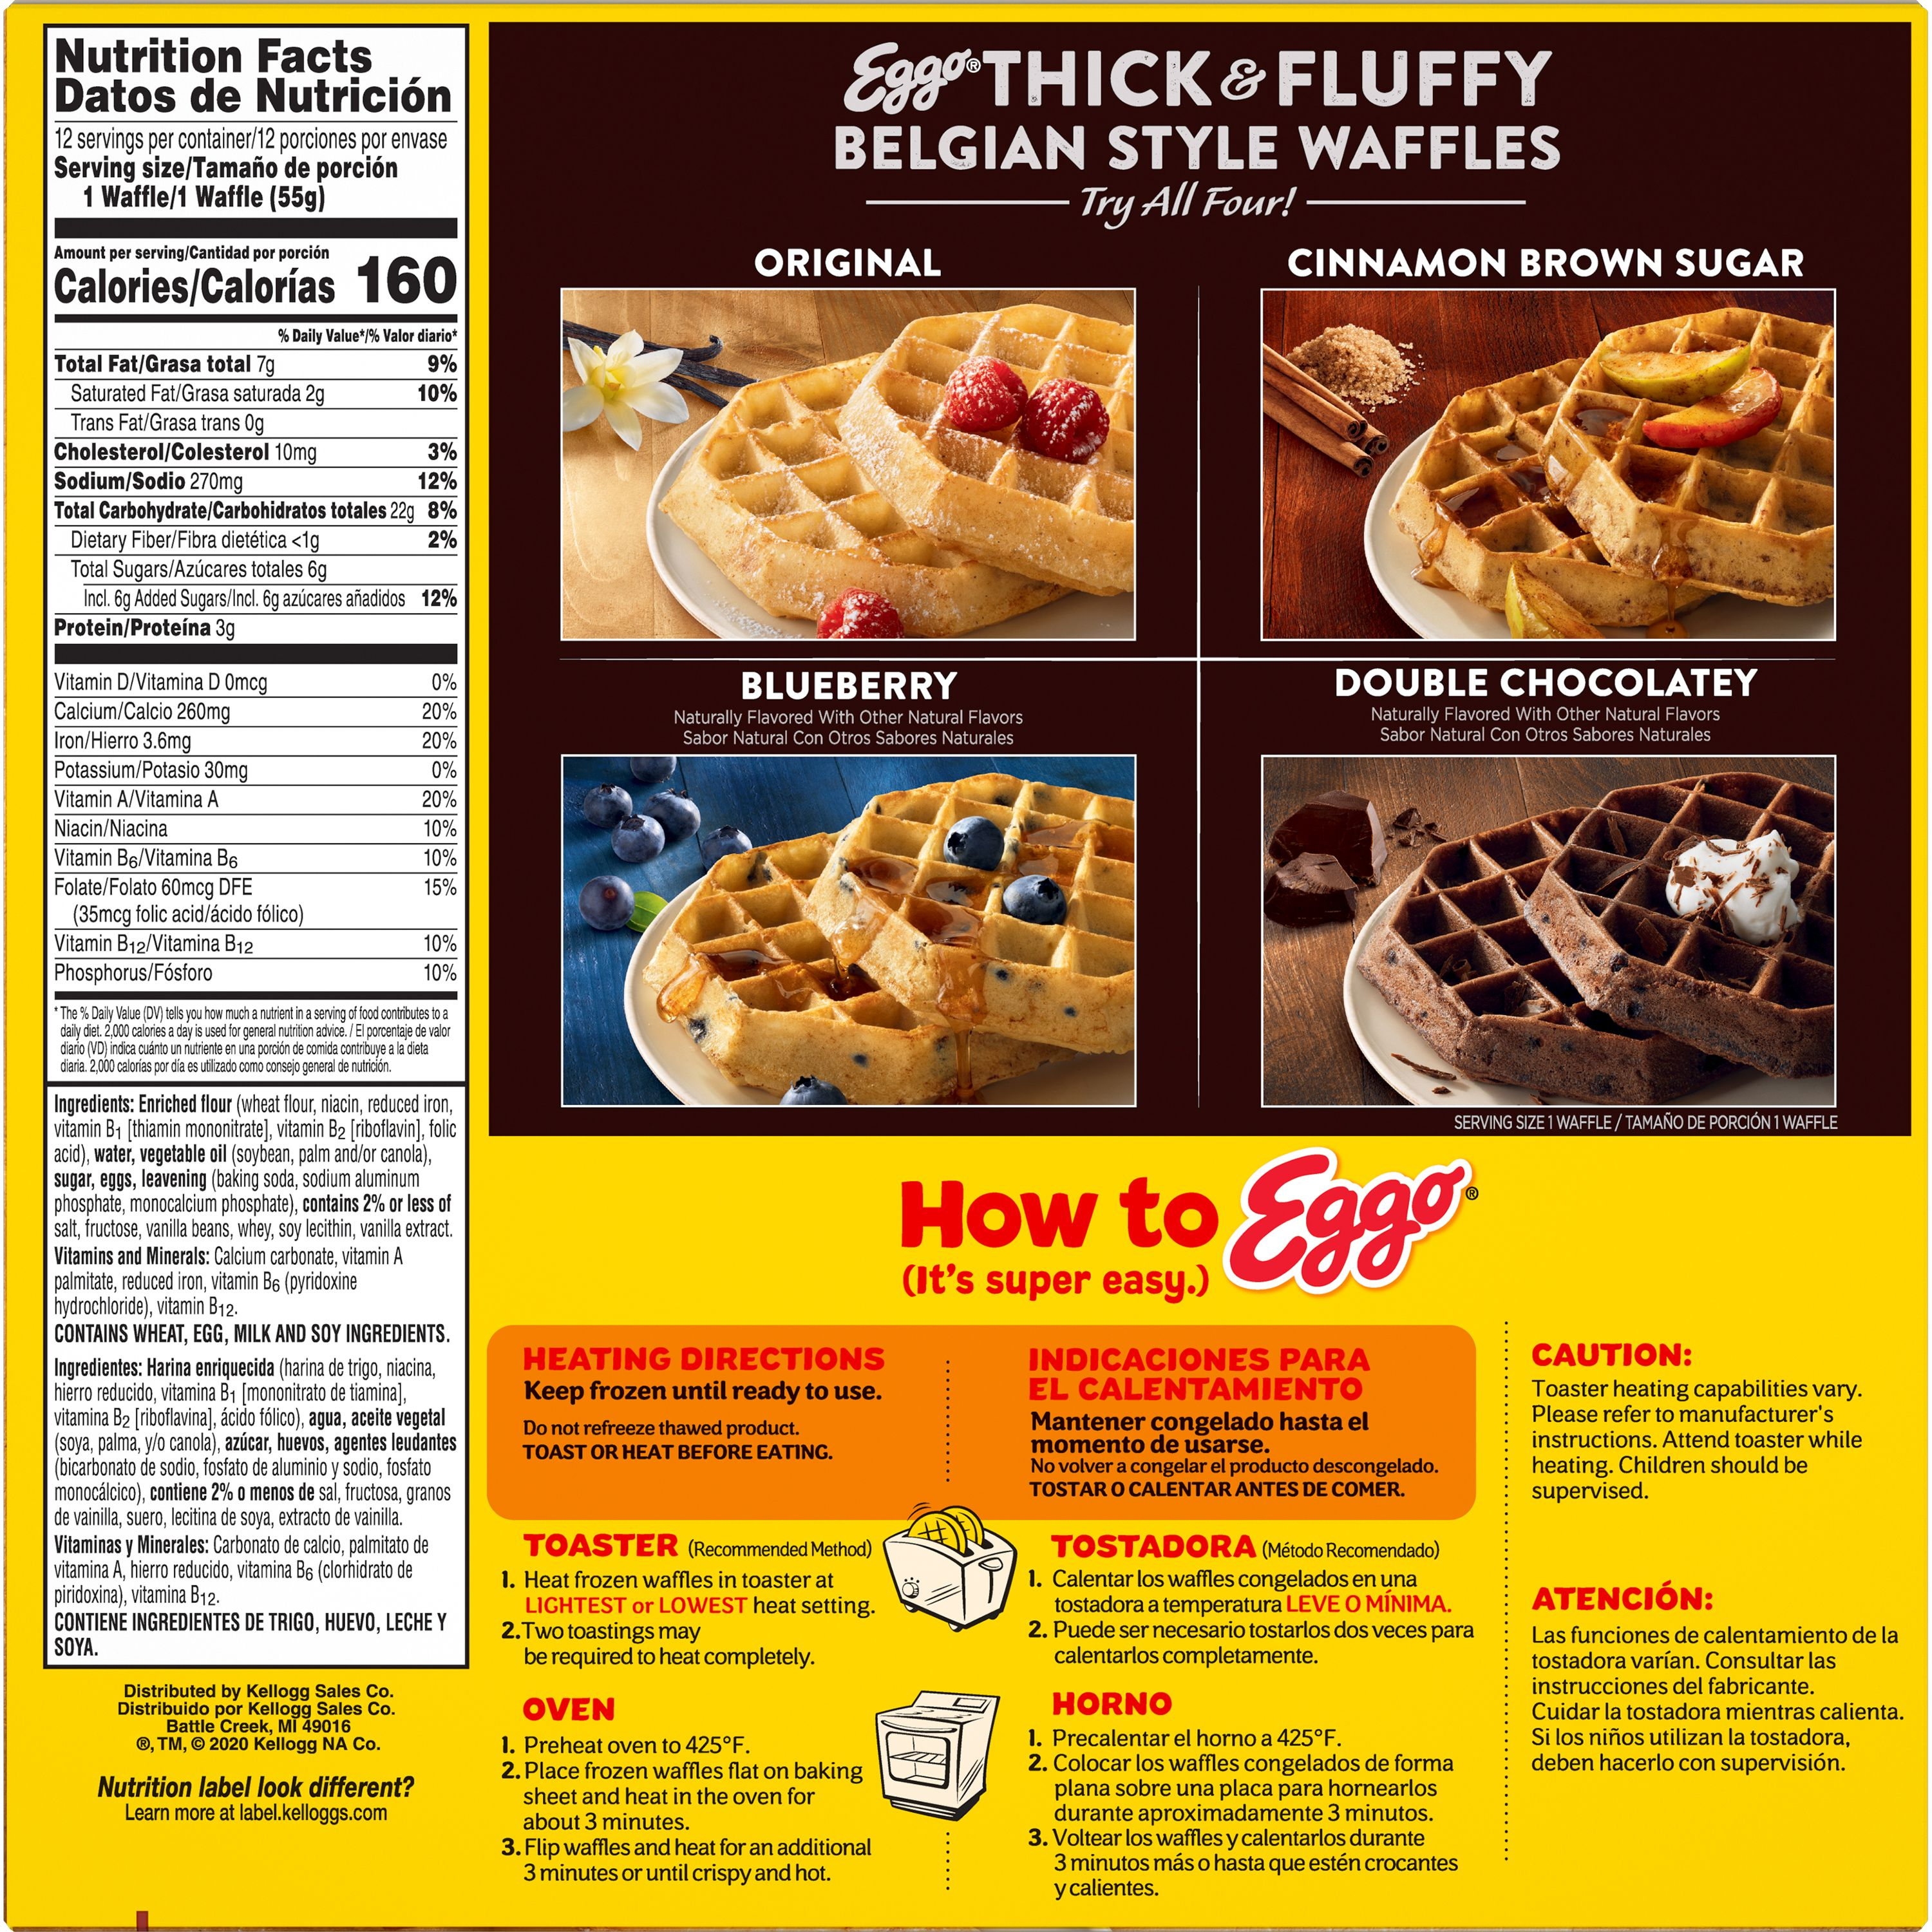 eggo thick and fluffy frozen waffles original easy breakfast family pack 12ct 23 2oz